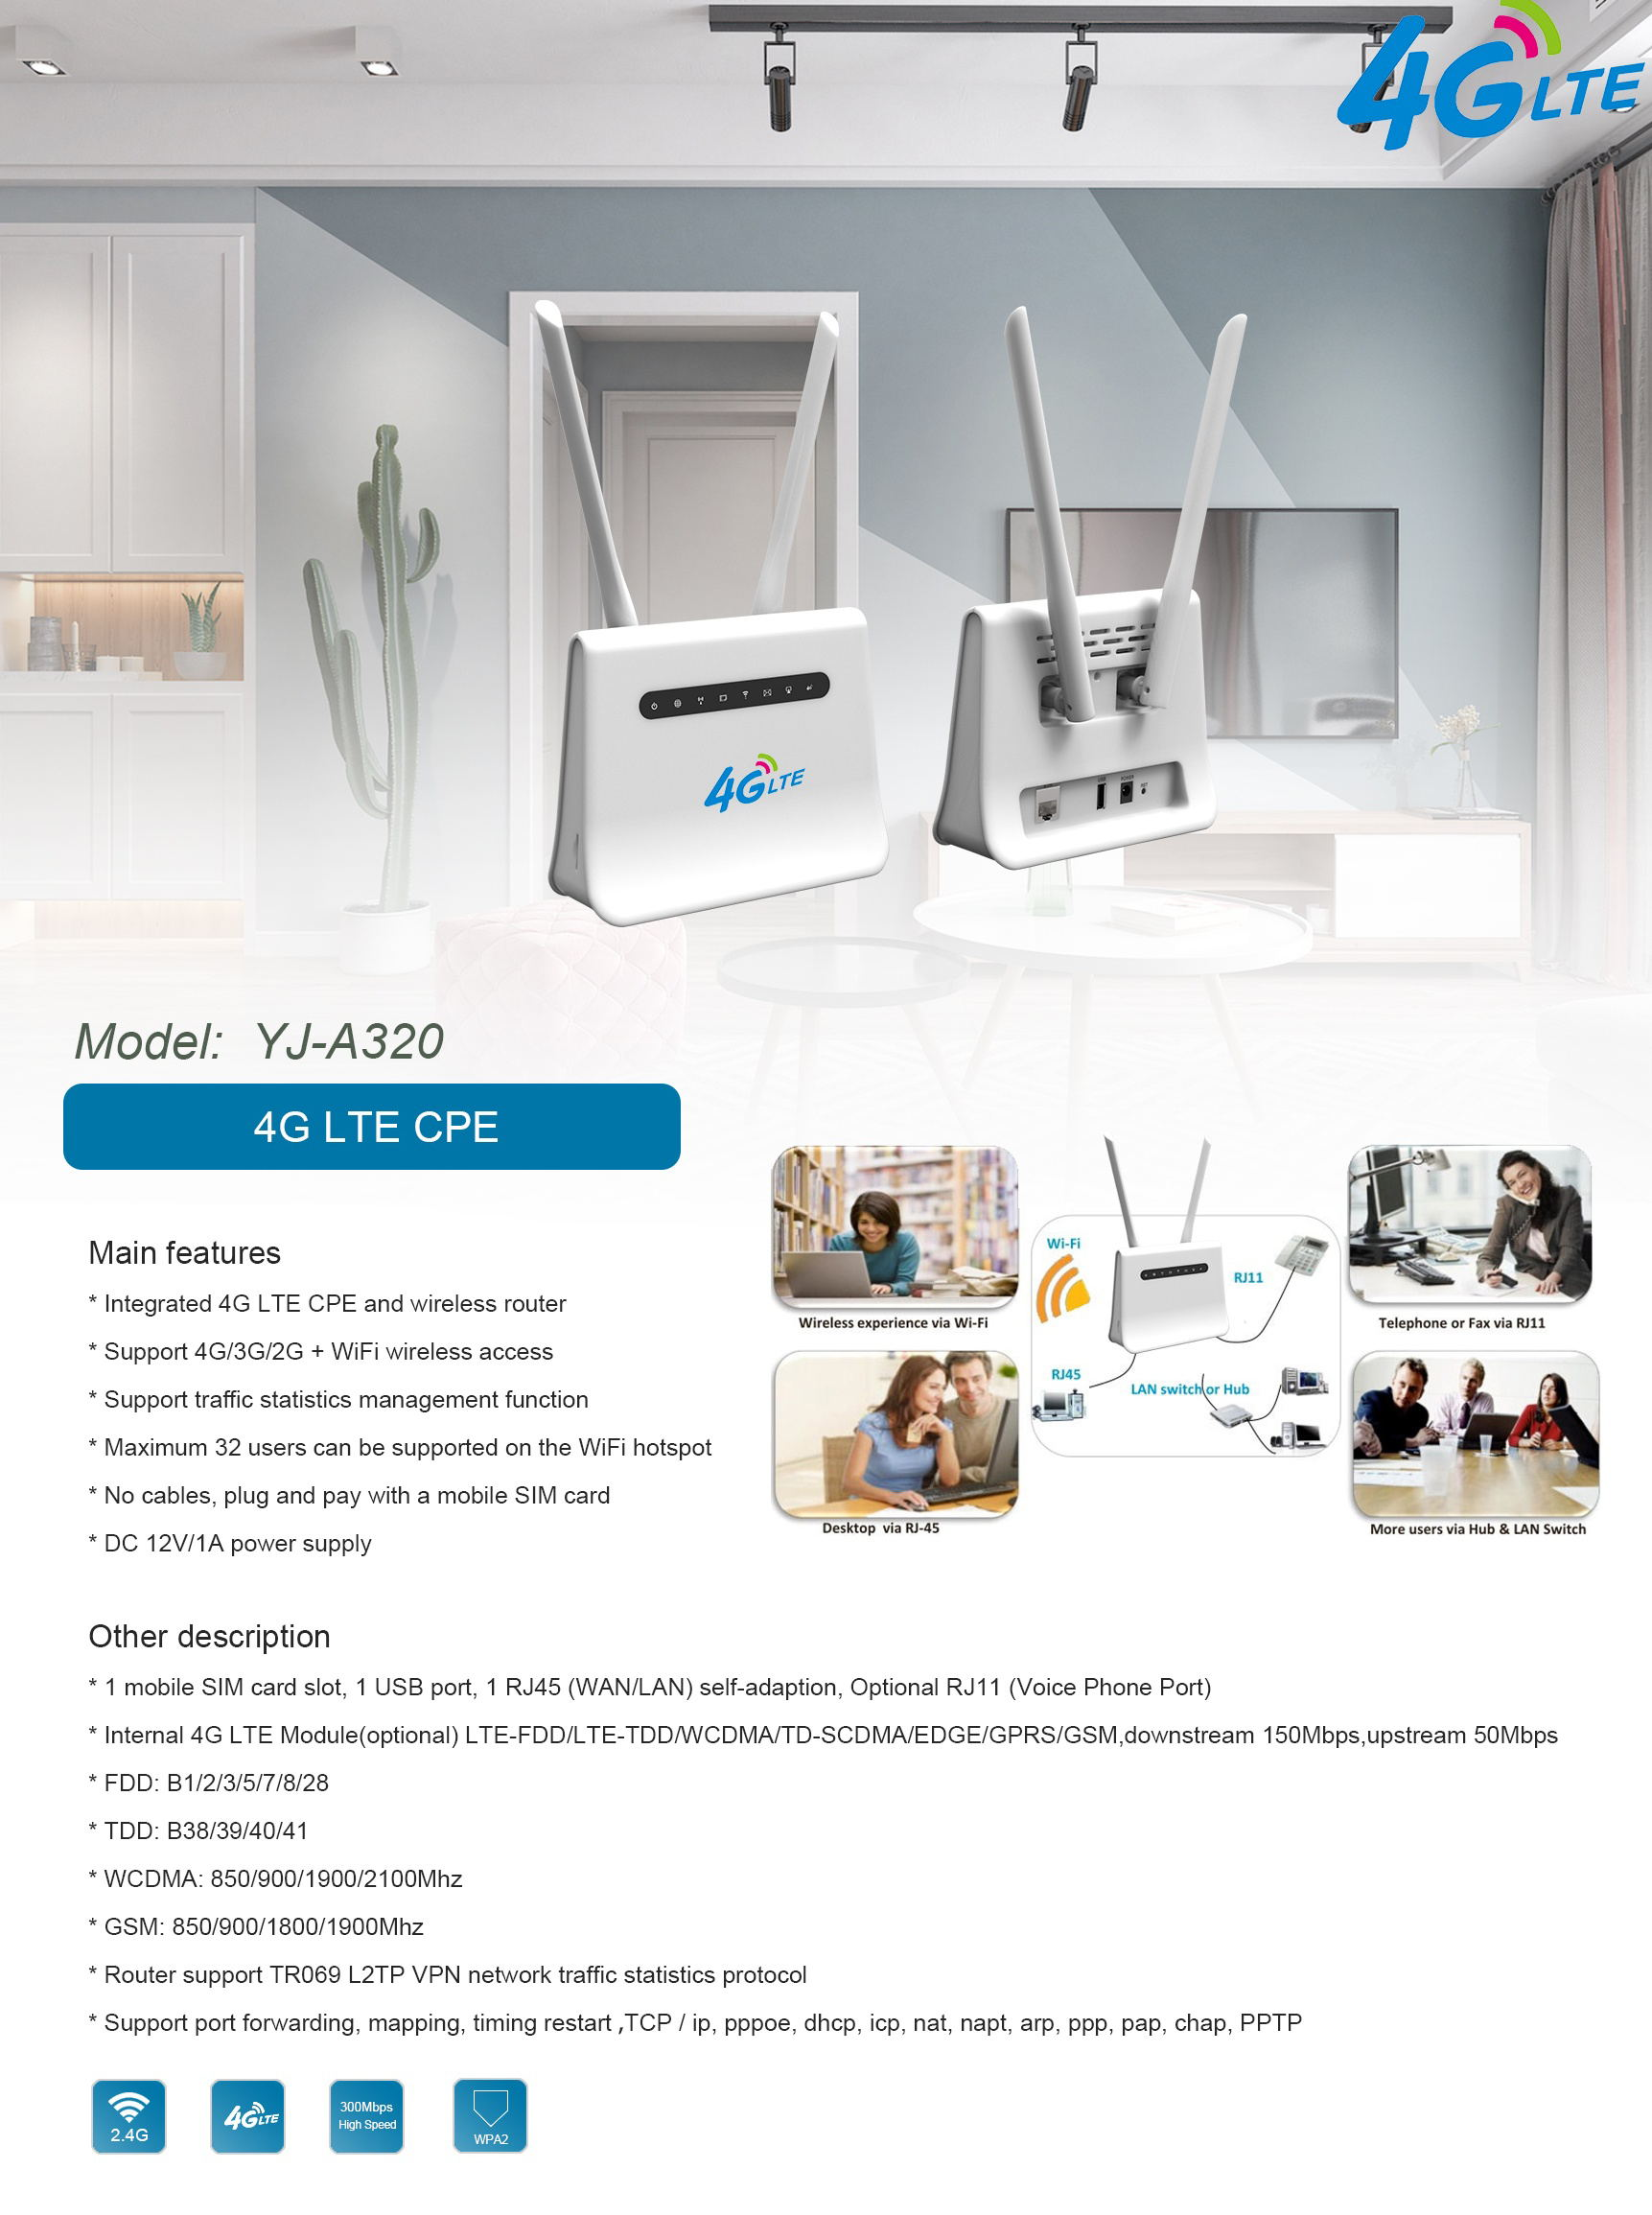 4G LTE Indoor CPE WiFi Router